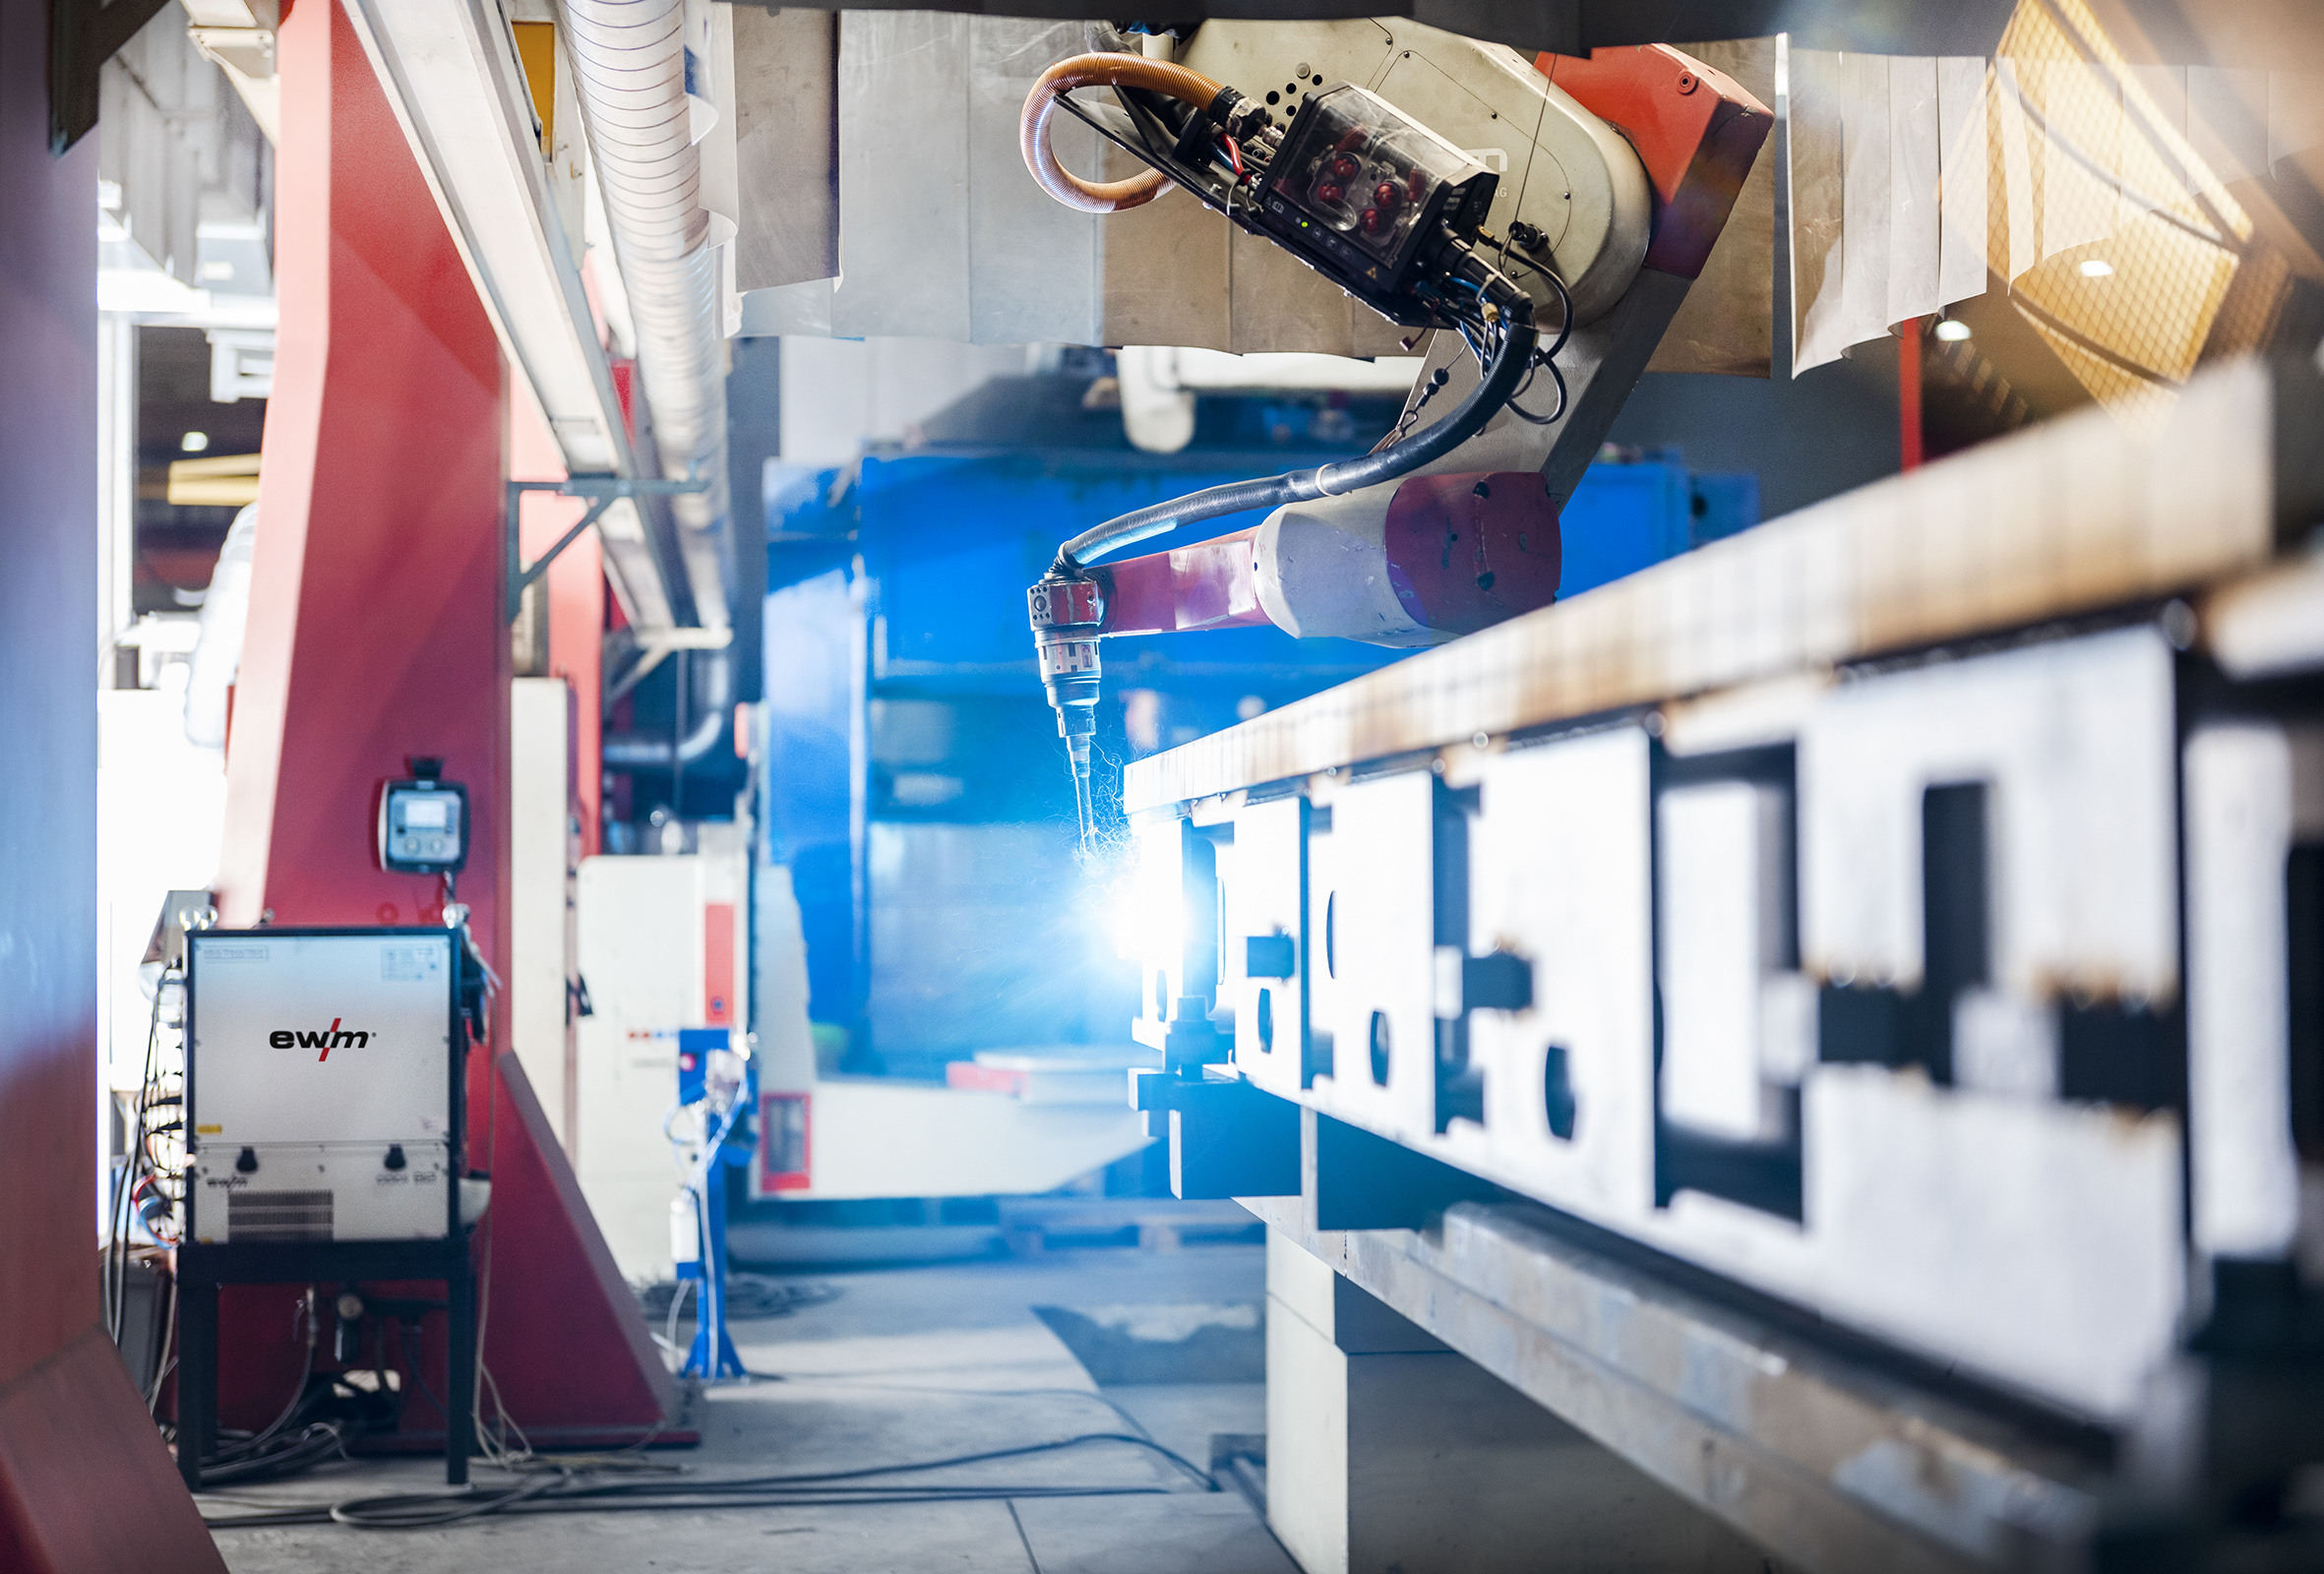 ISW Steel Components relies on EWM welding equipment